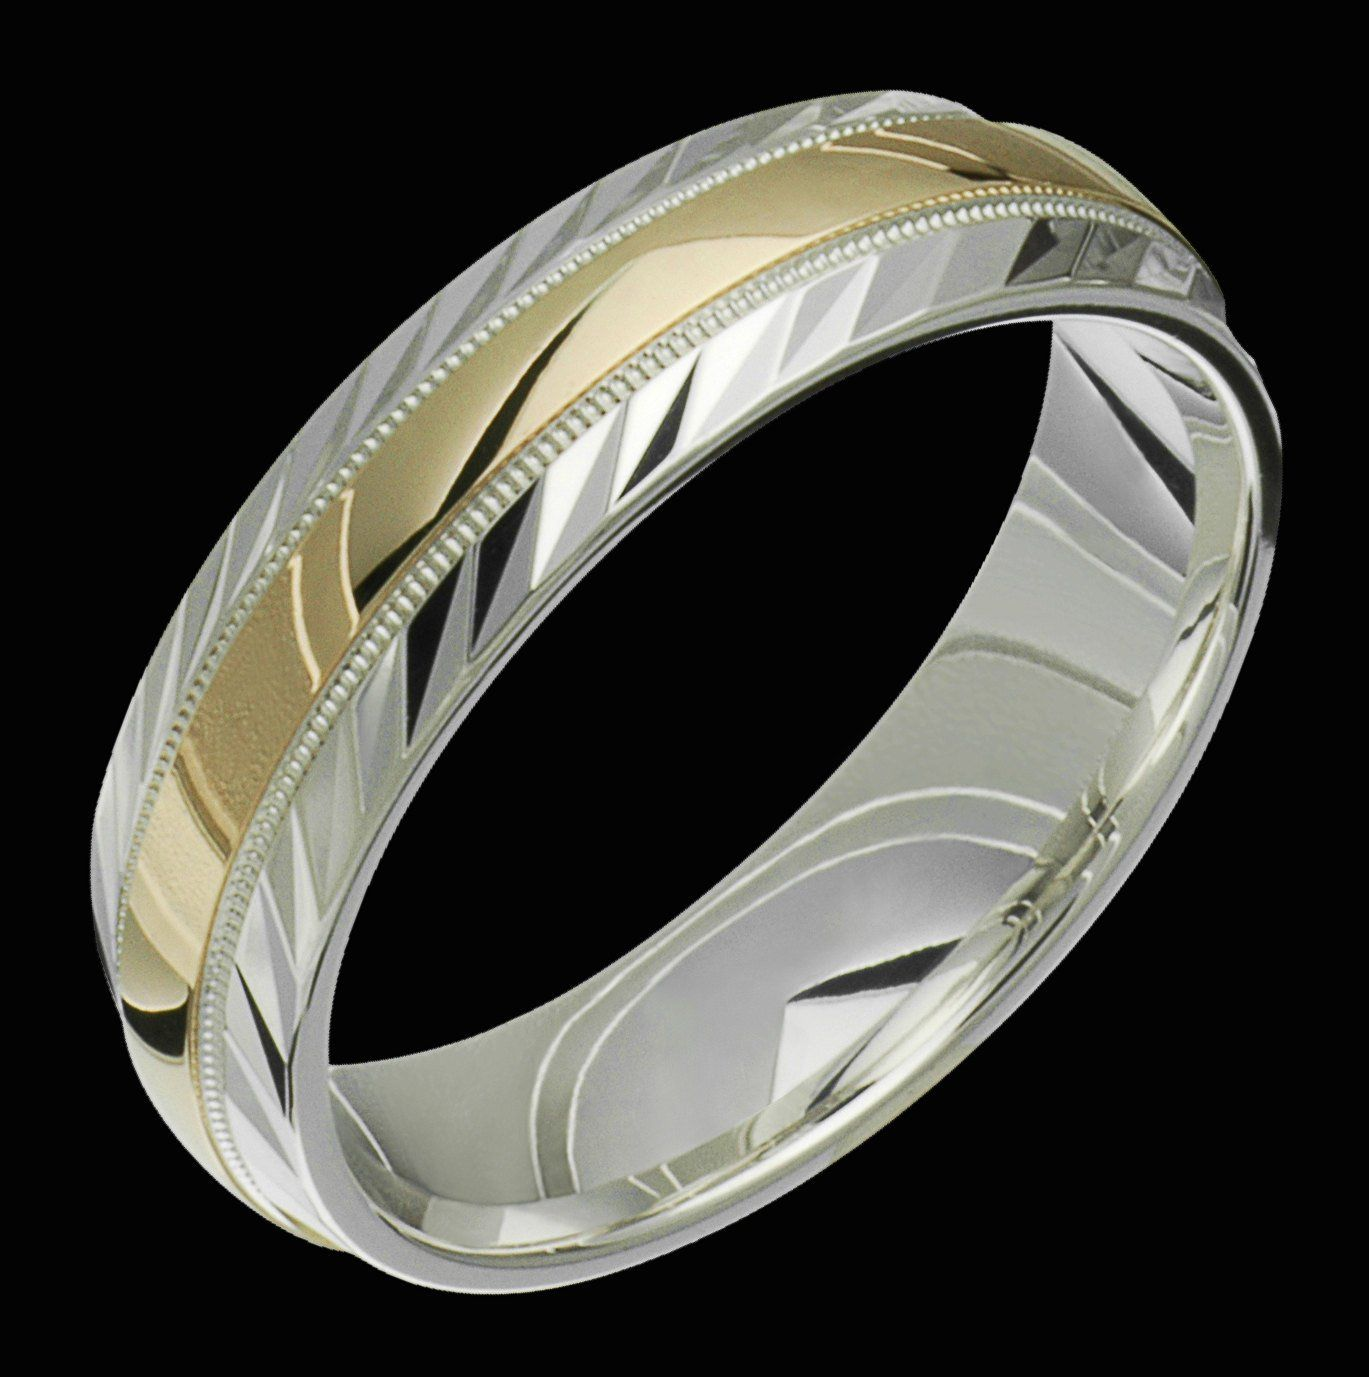 Silver and Gold TwoTone .925 Sterling Silver & 10K Yellow